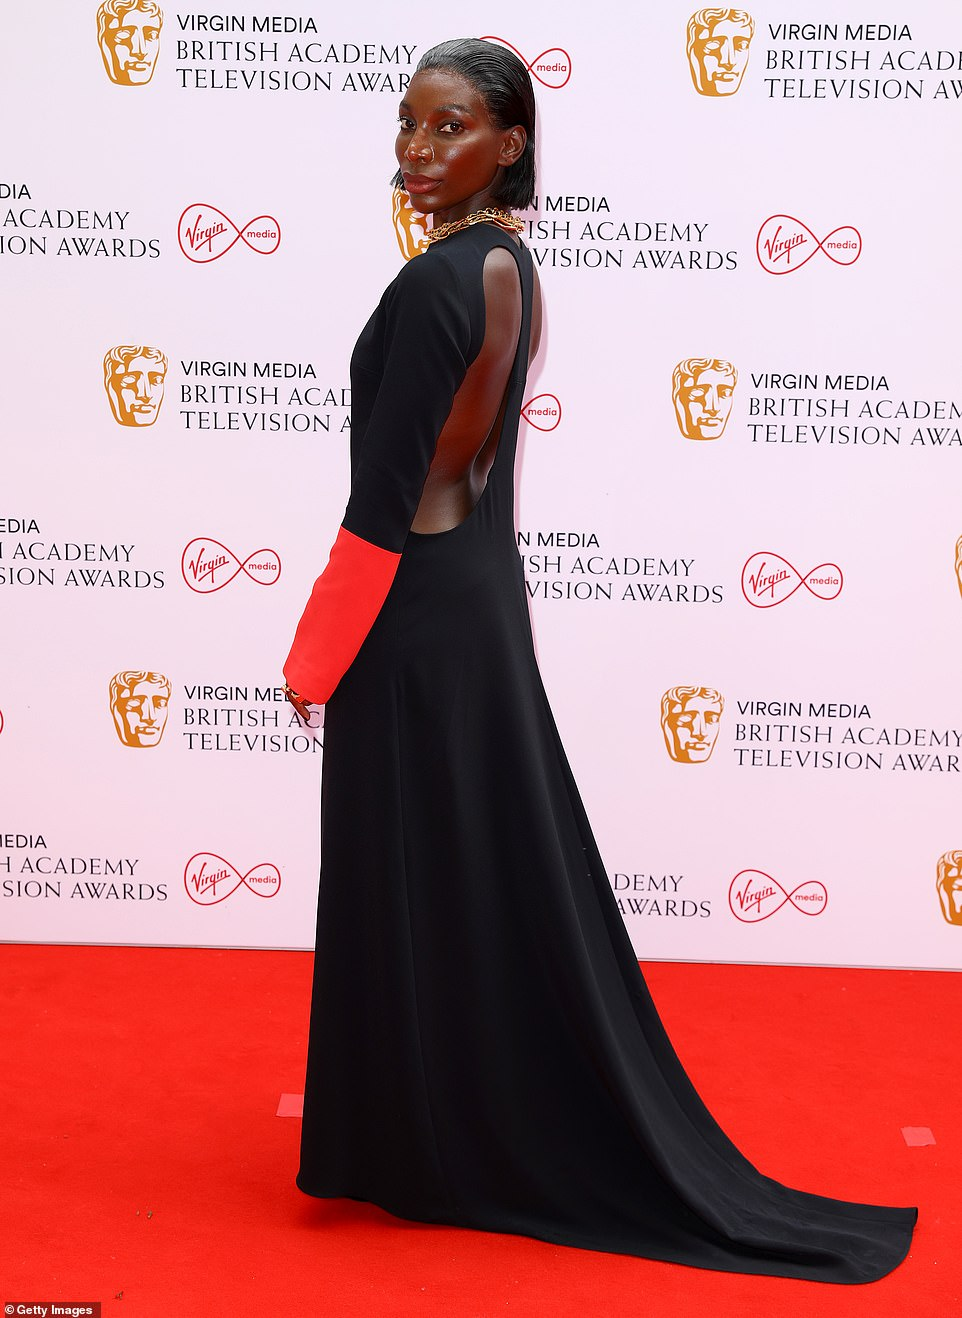 Eye-catching: Michaela Coel looked sensational as she made her way down the red carpet in a flowing black backless gown